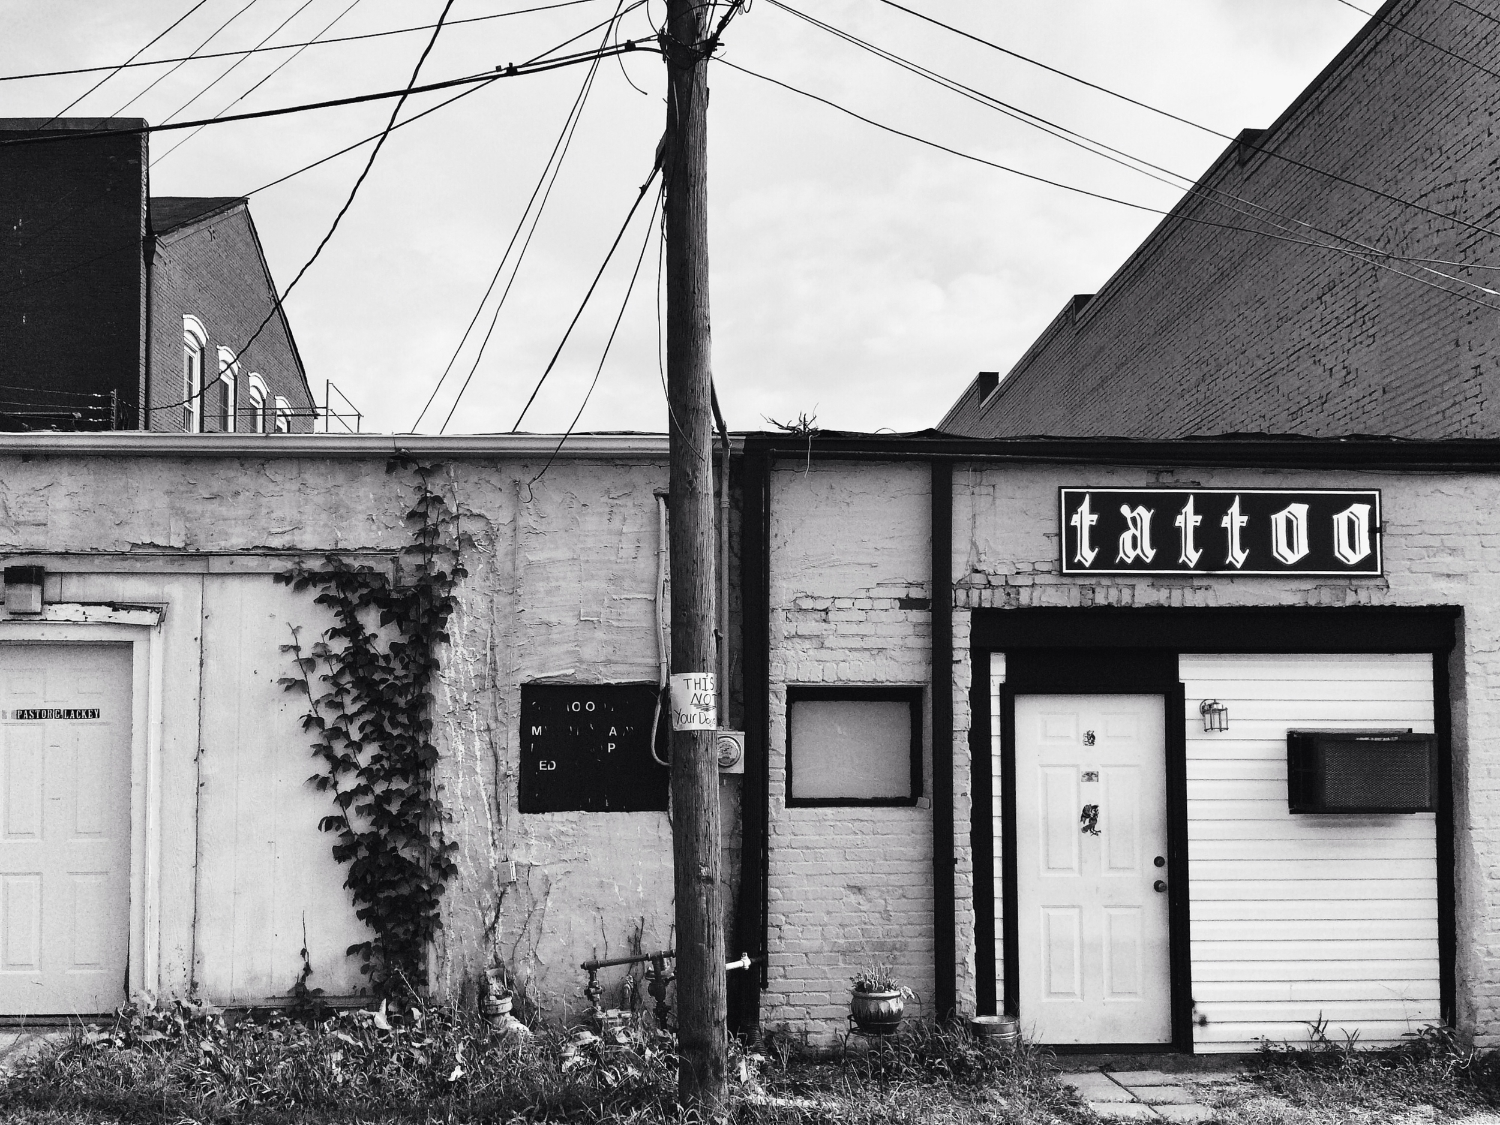 A door in to the pastor or tattoo artist on North Wayne Street